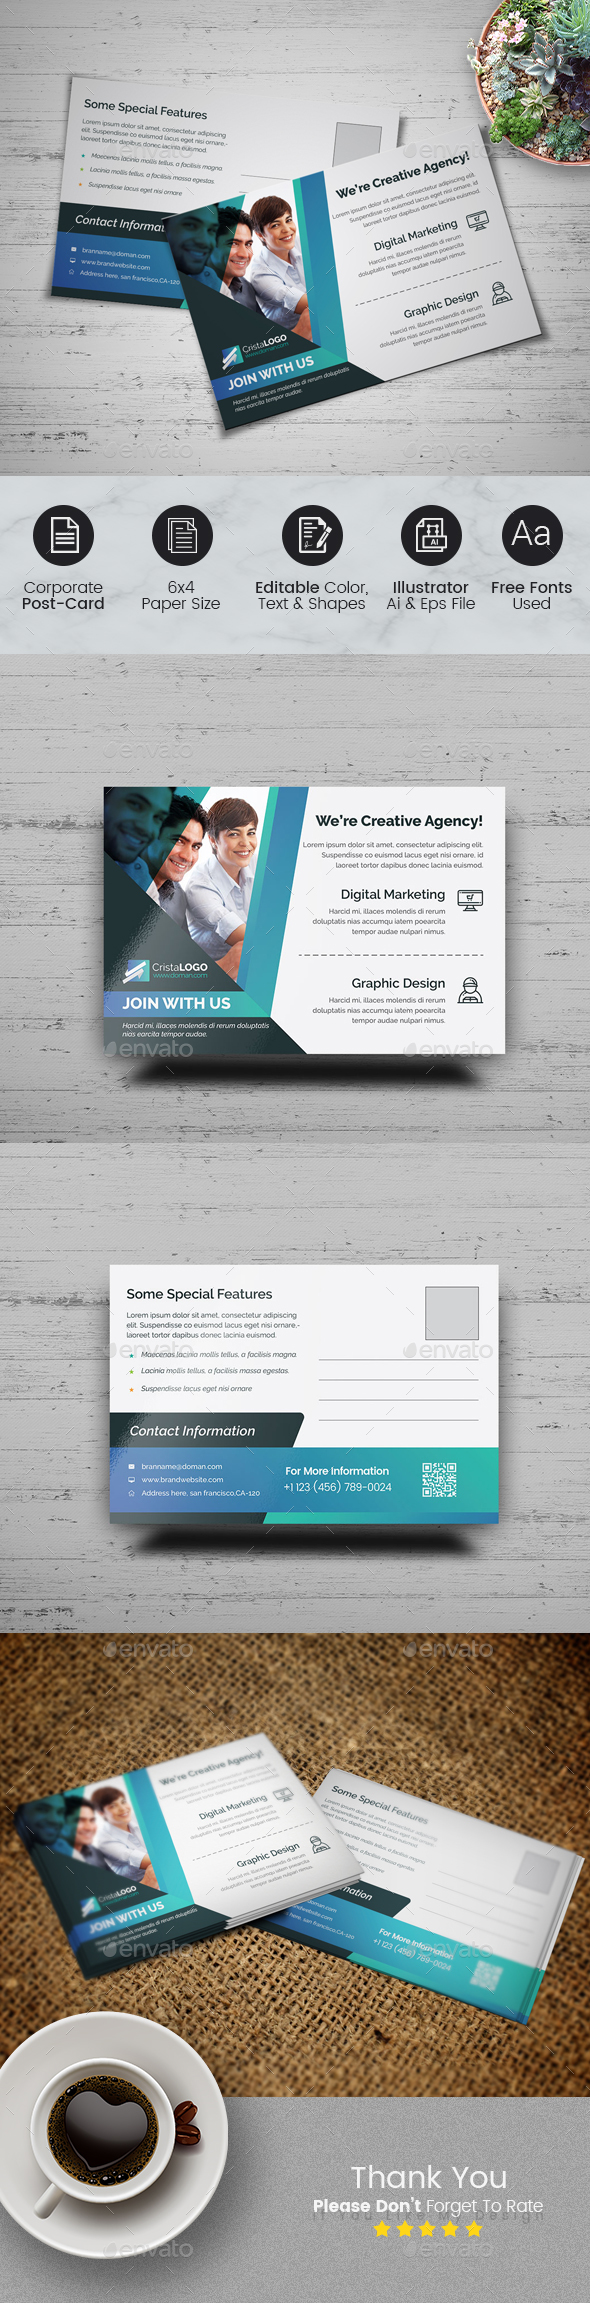 Business Postcard Template by CRISTAL_P | GraphicRiver